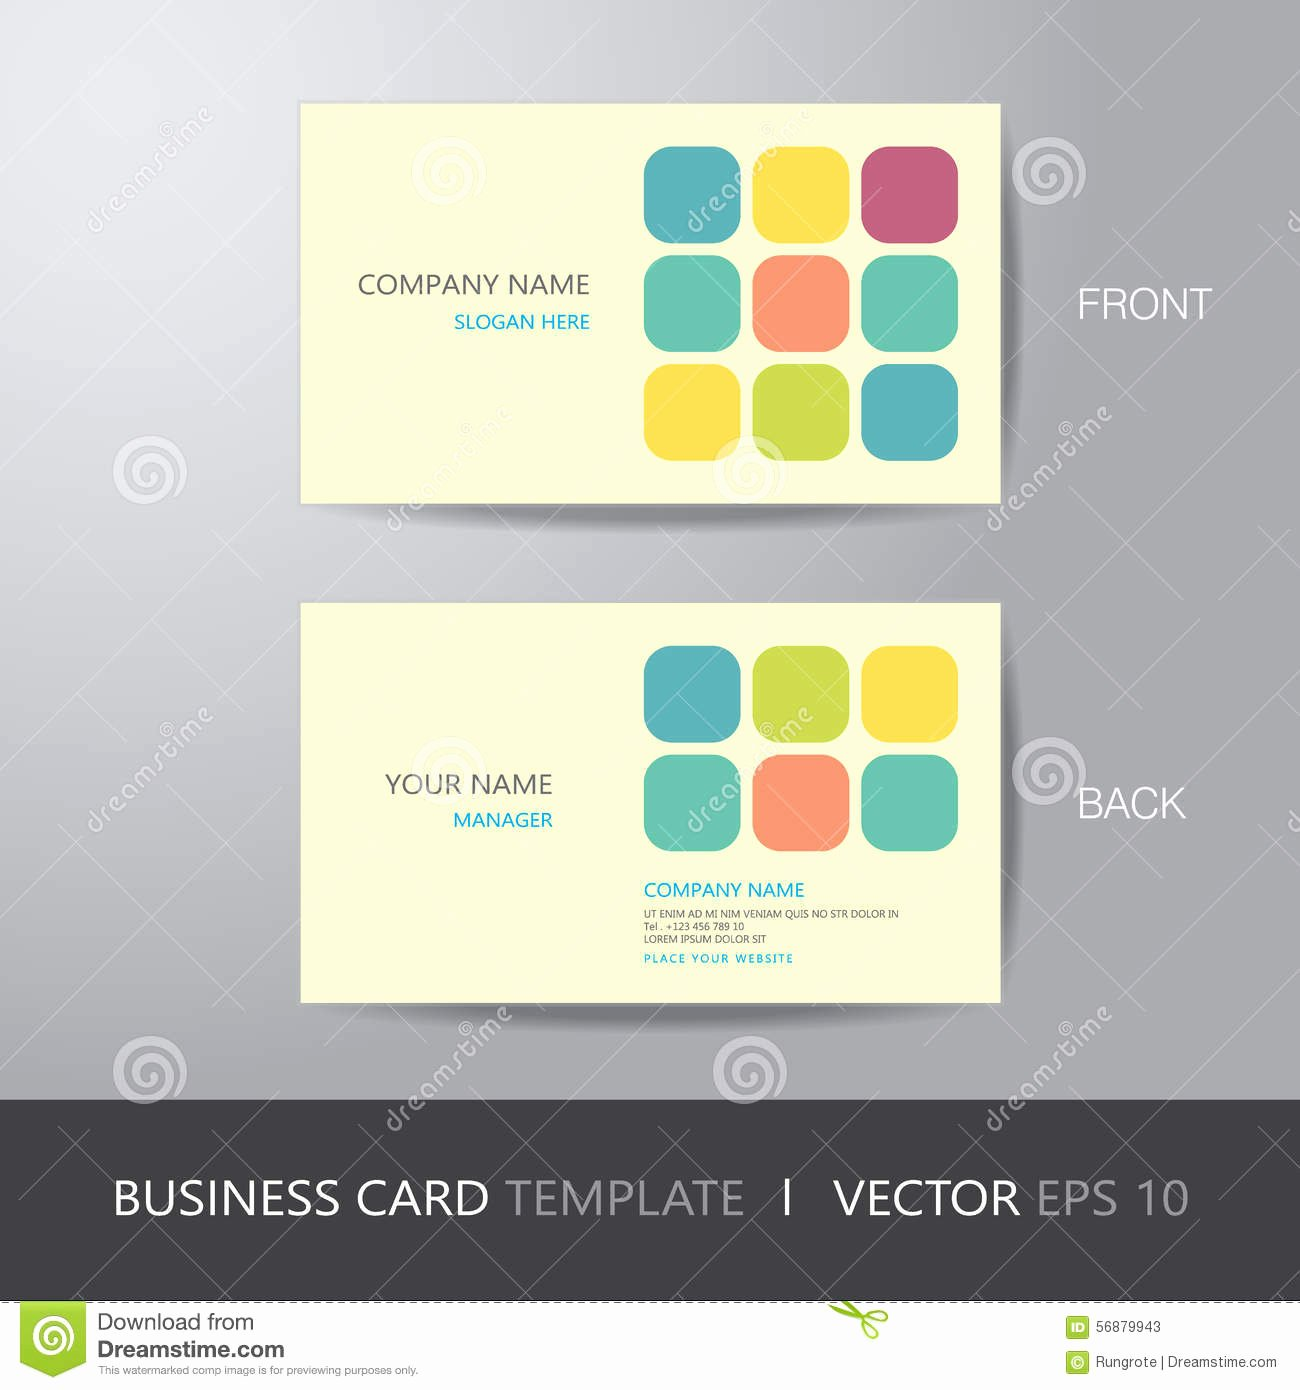 Business Card Layout Template Elegant Business Card Square Abstract Background Design Layout